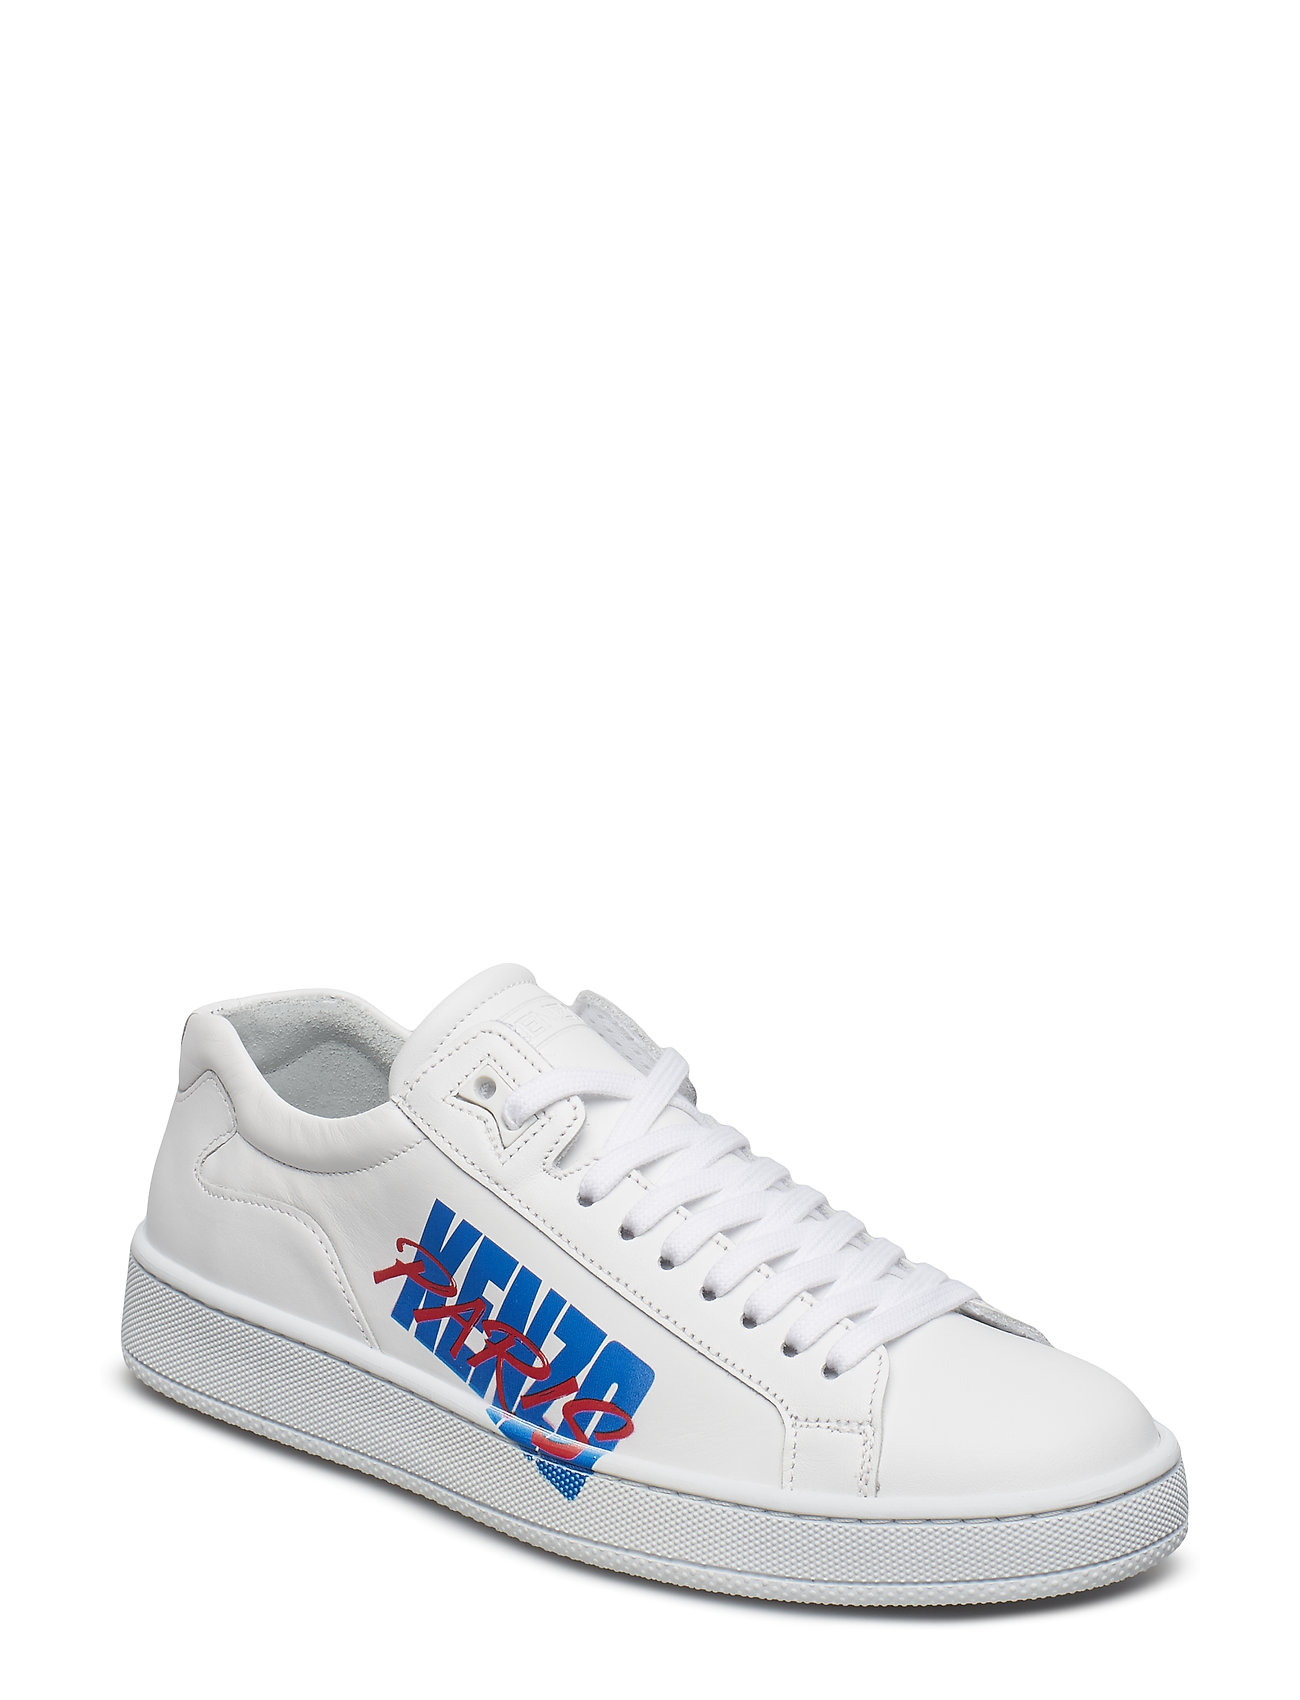 Image of Low Top Sneaker Main Low-top Sneakers Hvid Kenzo (3142009585)